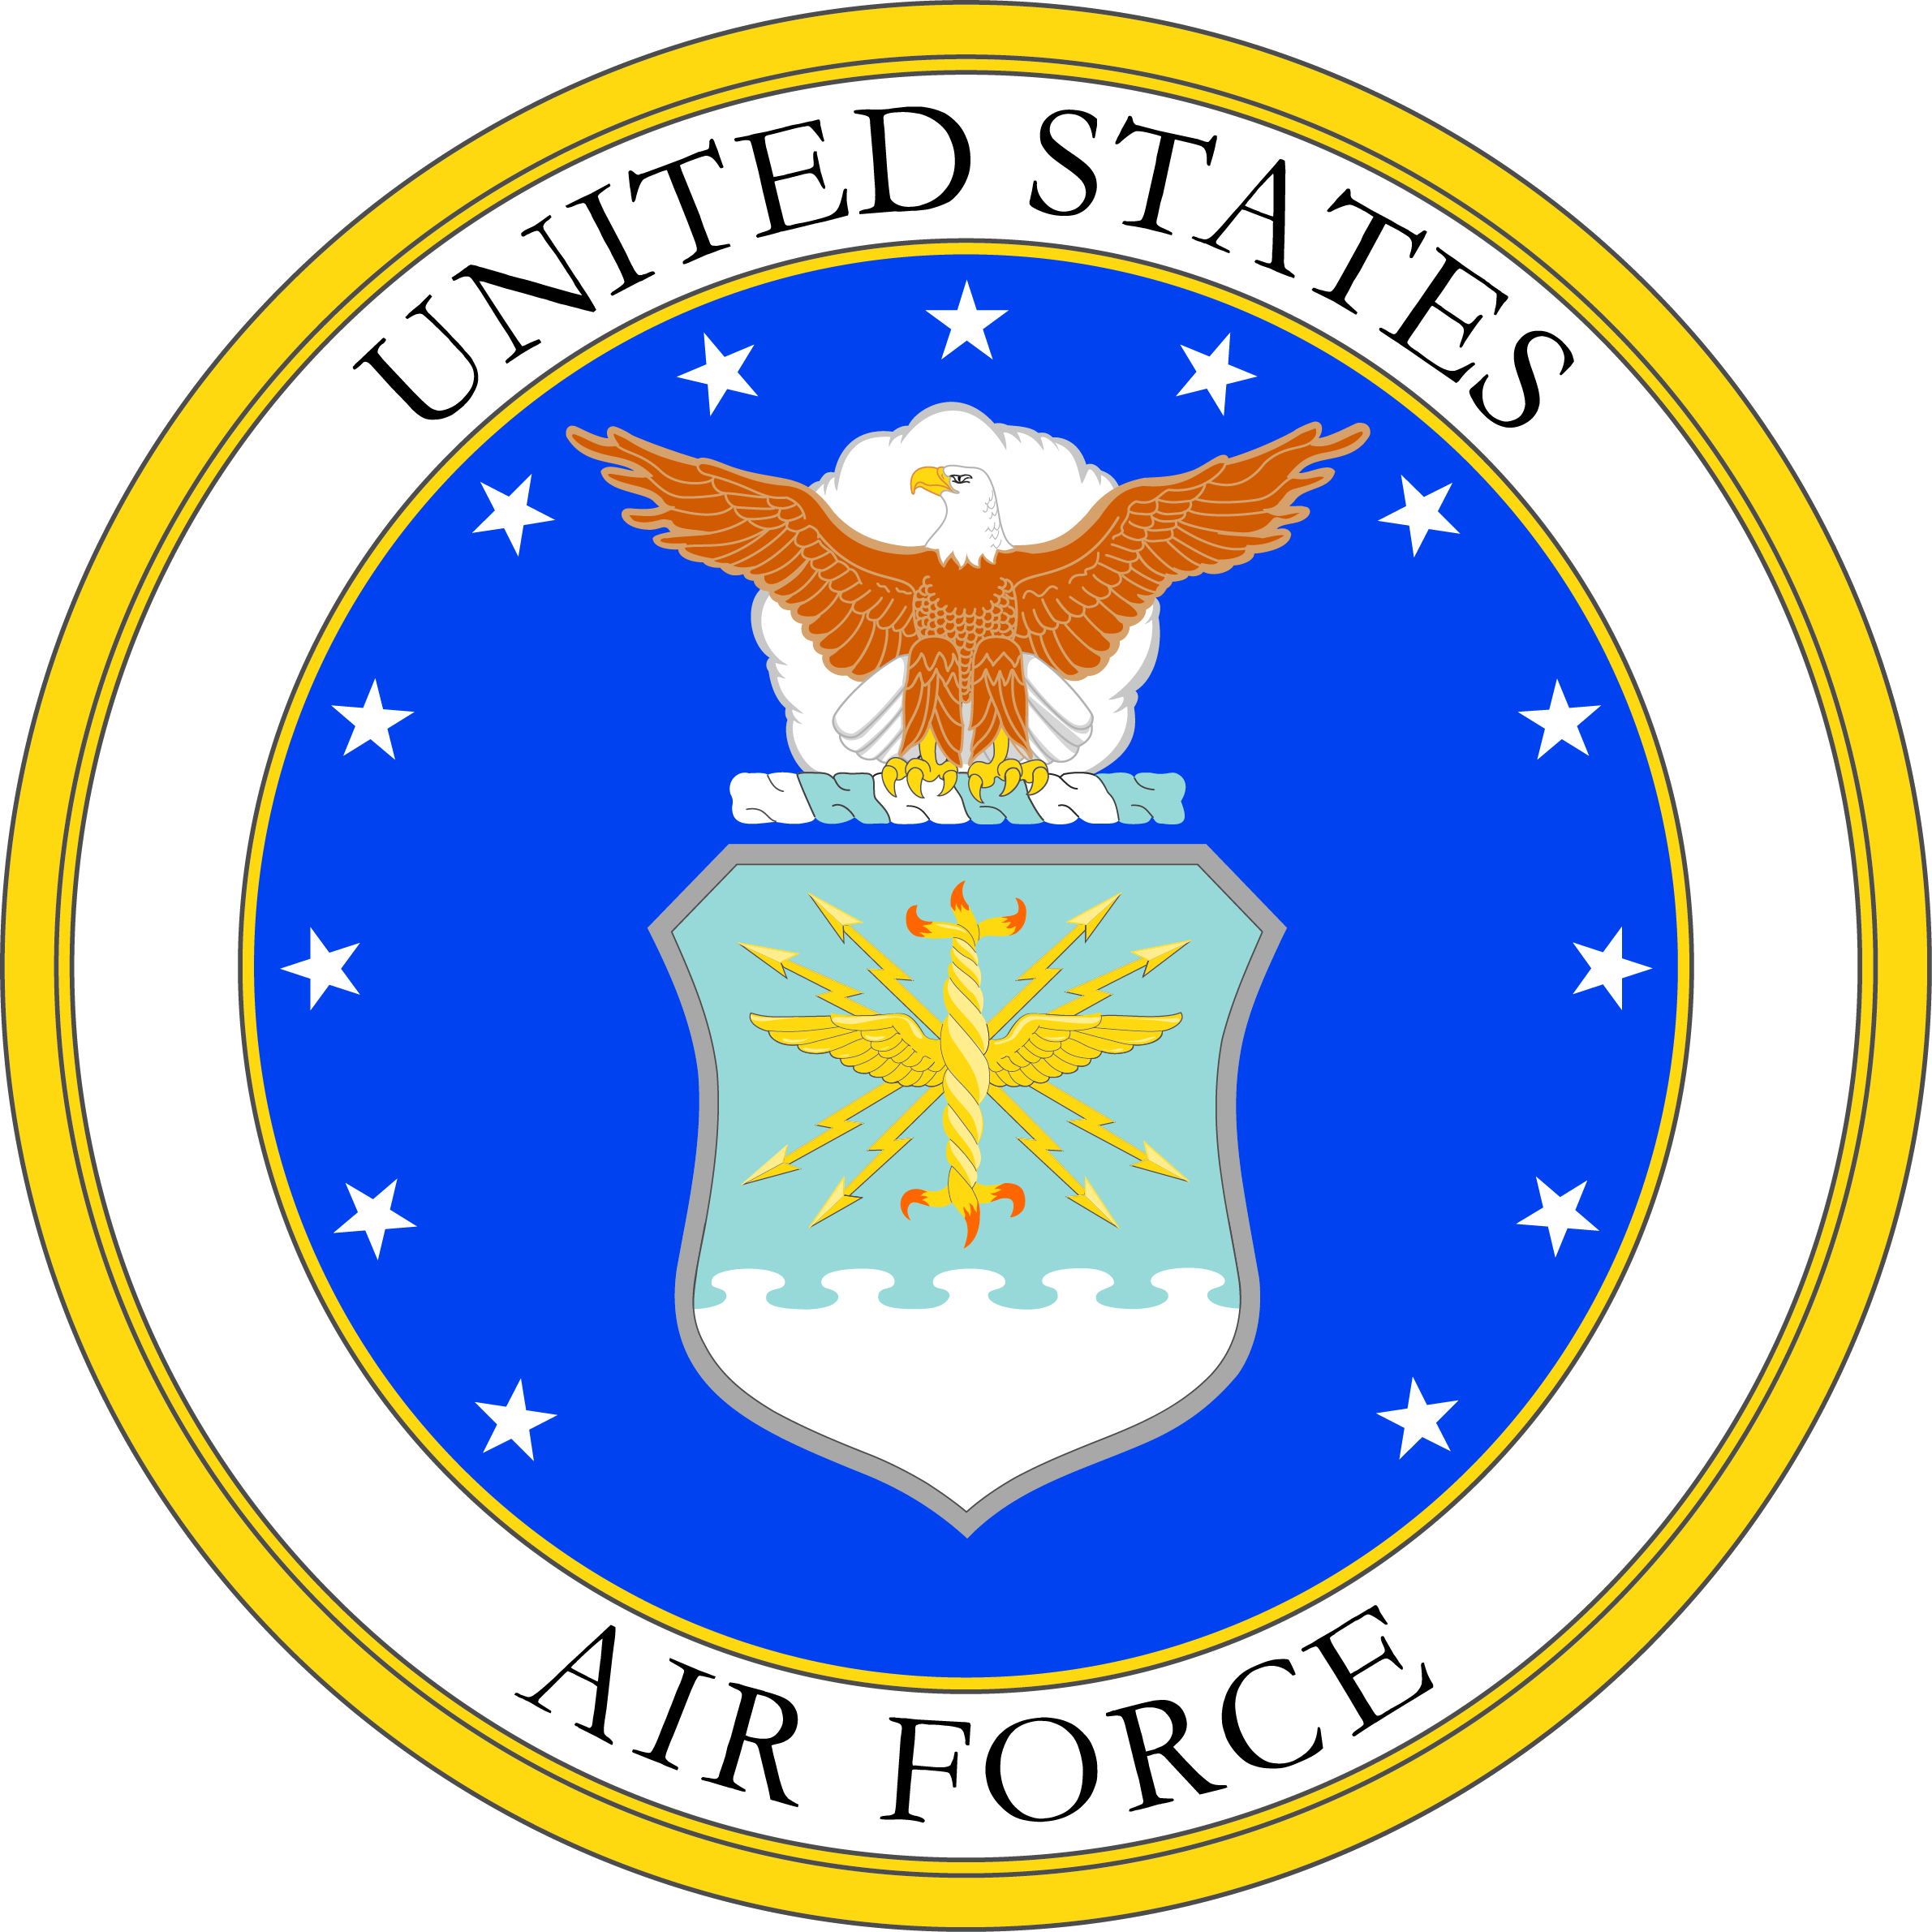 Filemilitary service mark of the united states air forceg filemilitary service mark of the united states air forceg biocorpaavc Image collections